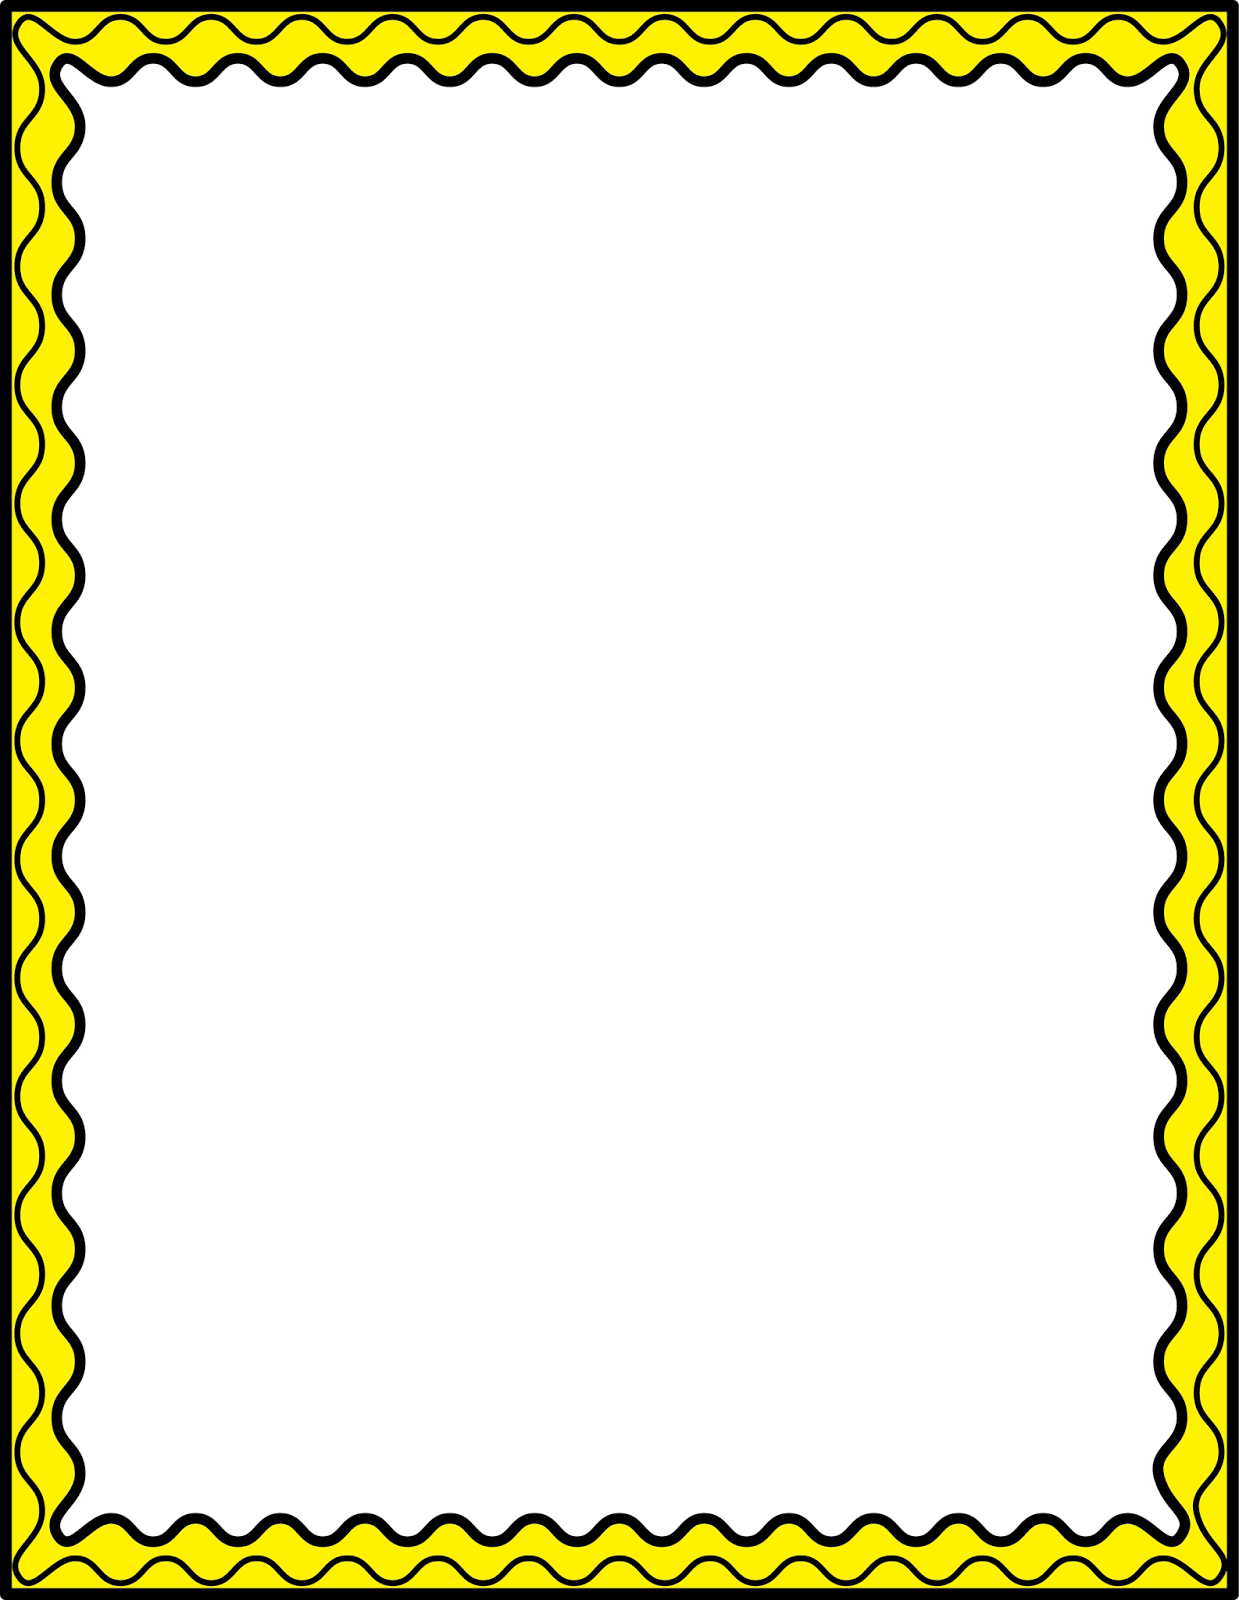 Pin on Page borders.